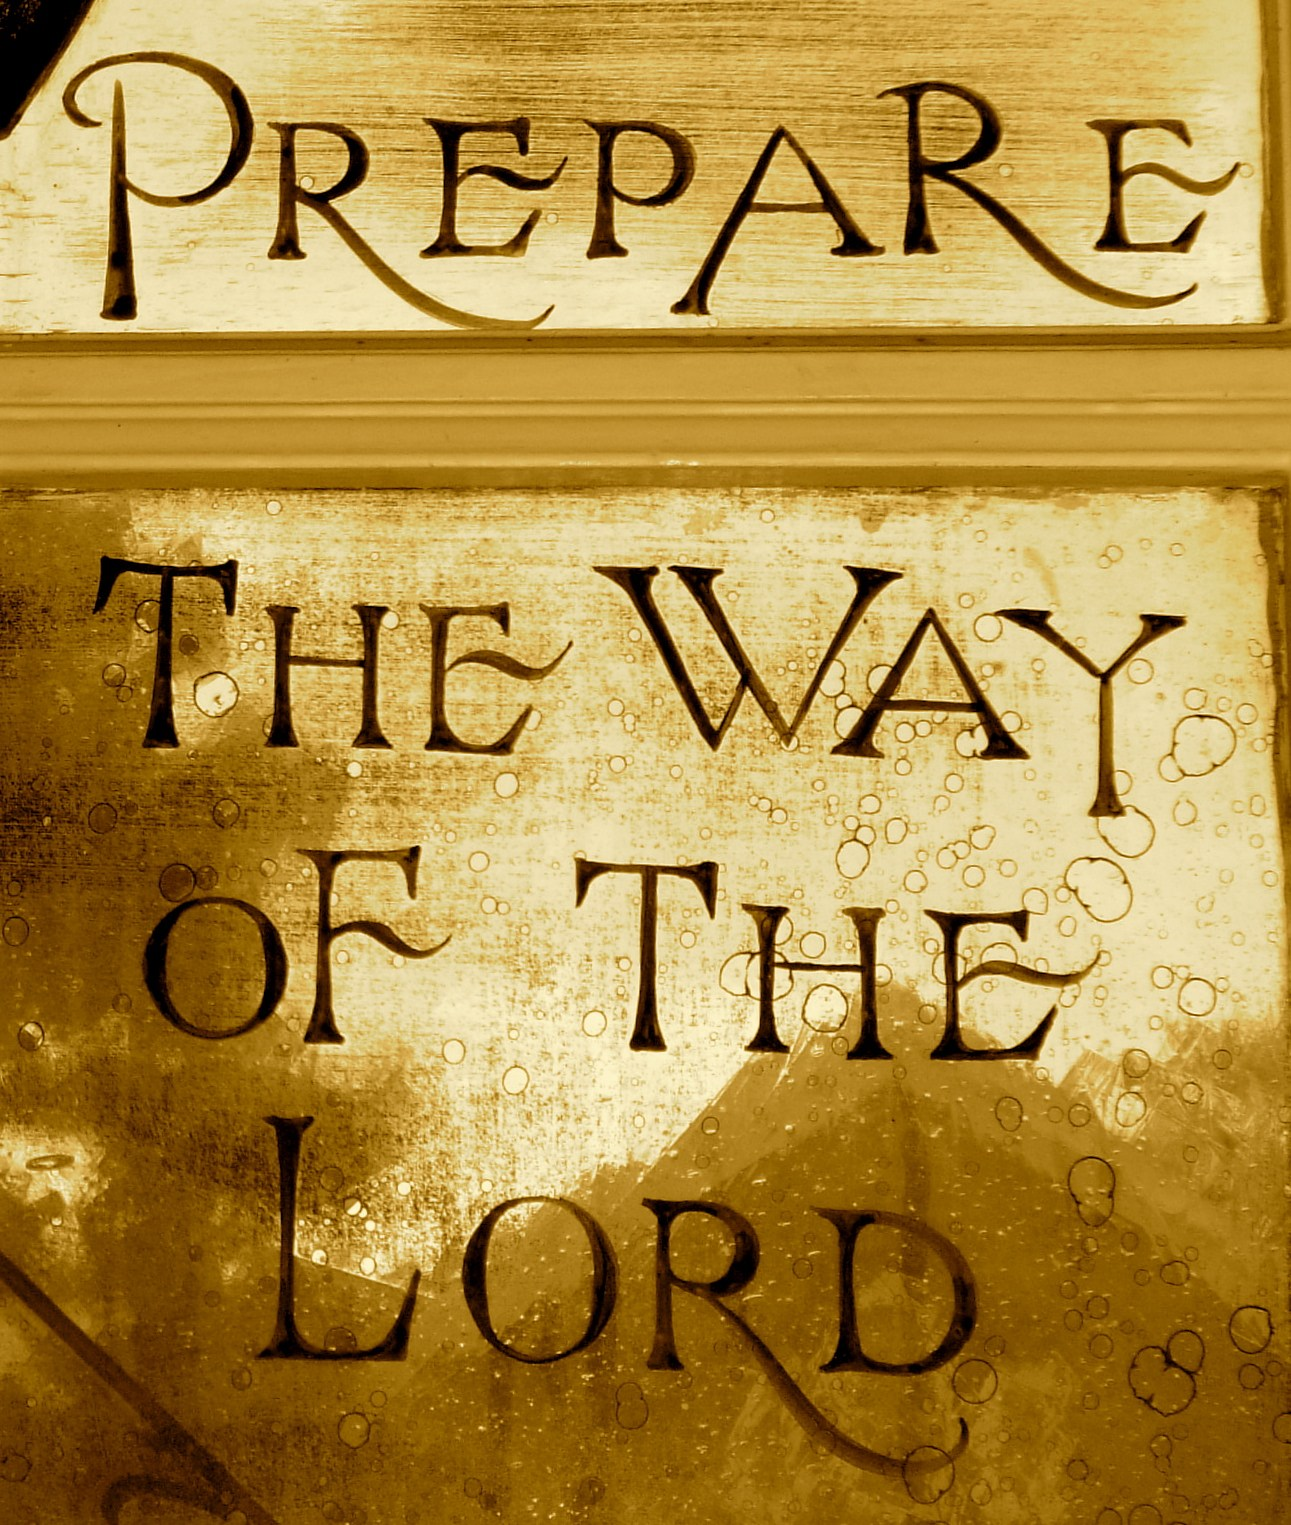 Prepare the way of the lord clipart image library stock Prepare the way of the lord clipart 6 » Clipart Portal image library stock